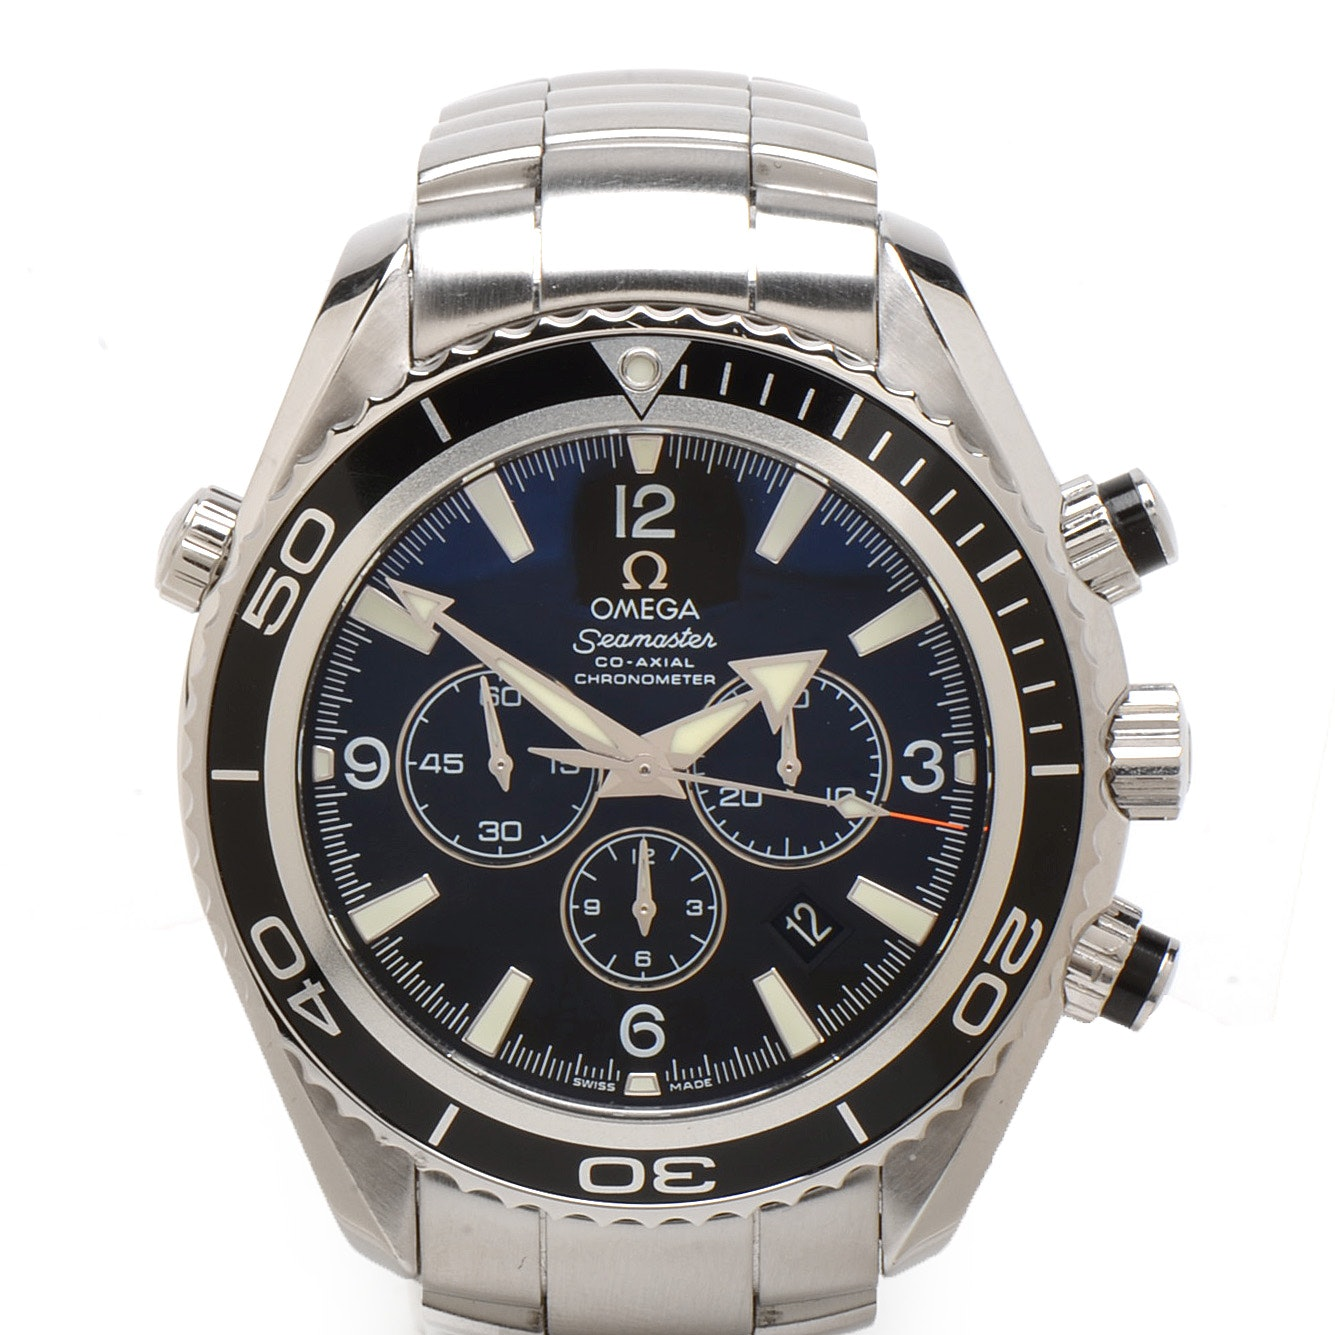 Omega Seamaster Planet Ocean Chronograph 600m Co-Axial Automatic Wristwatch